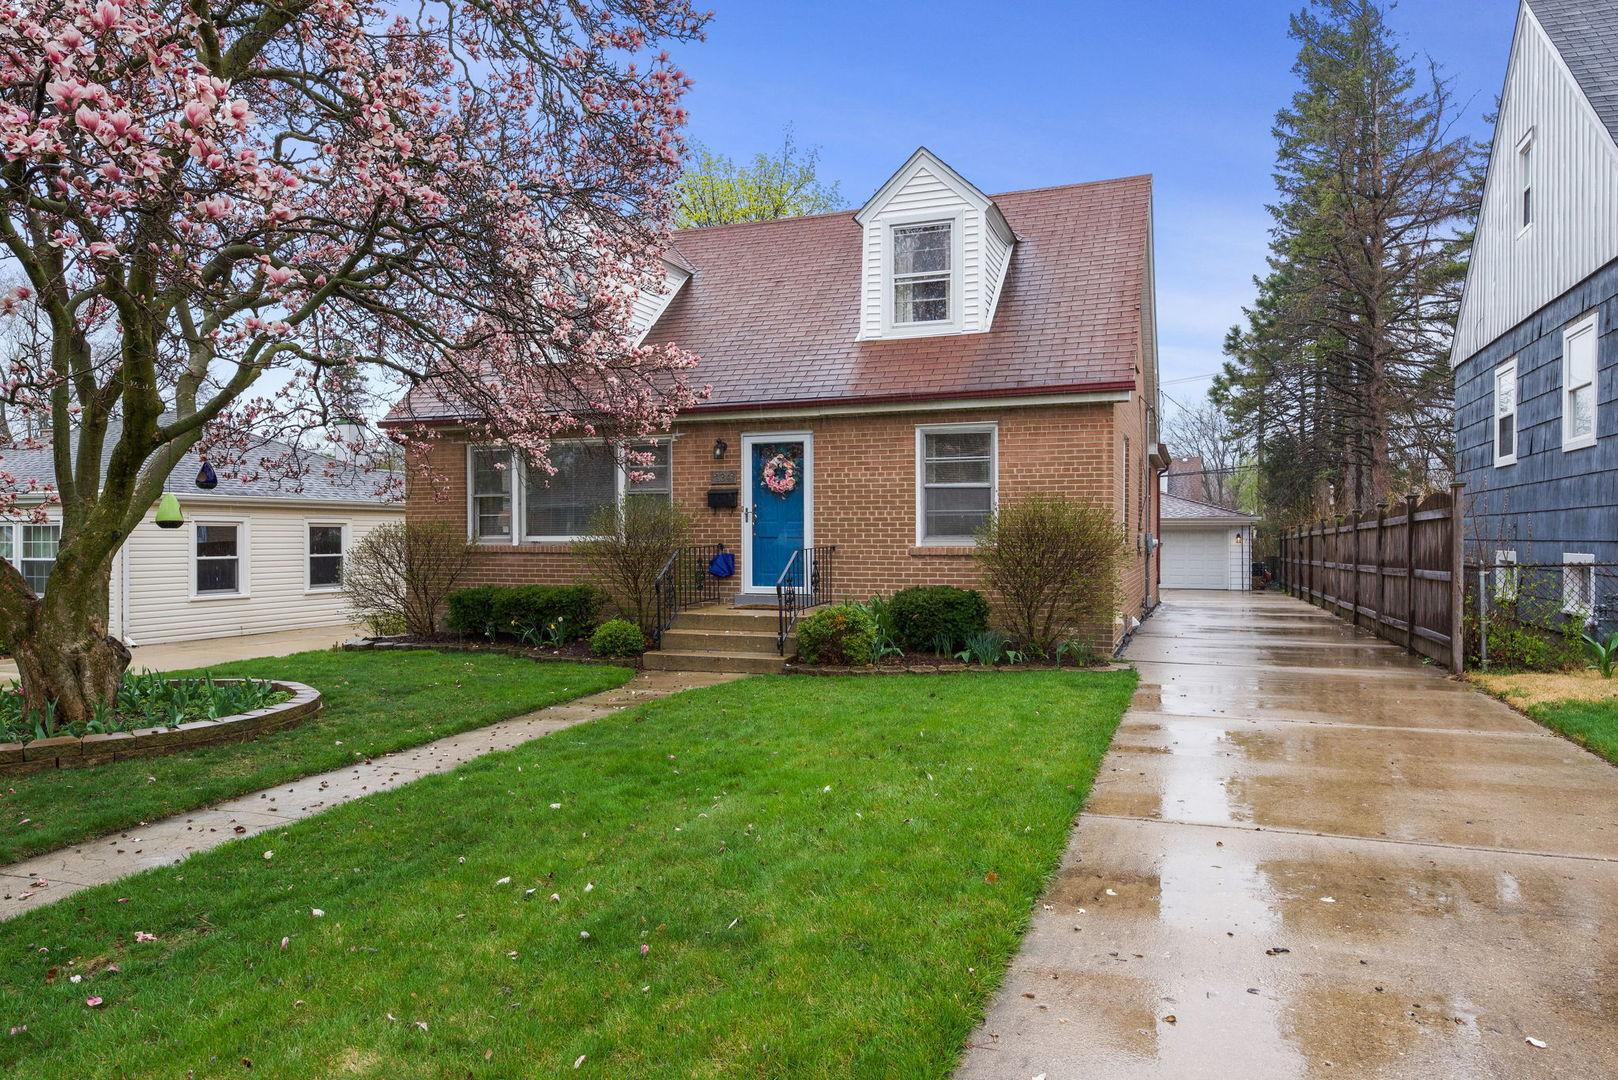 Love where you live in this brick beauty that offers updated Kitchen & baths! Hardwood floors, formal Dining Room, eat-in Kitchen with Quartz countertops & SS appliances, finished basement with dry bar, extra living space & storage.  2 Car garage,  landscaped yard.  Clean & well maintained!  Move-in Ready!  Convenient location - Walk to train & shopping.